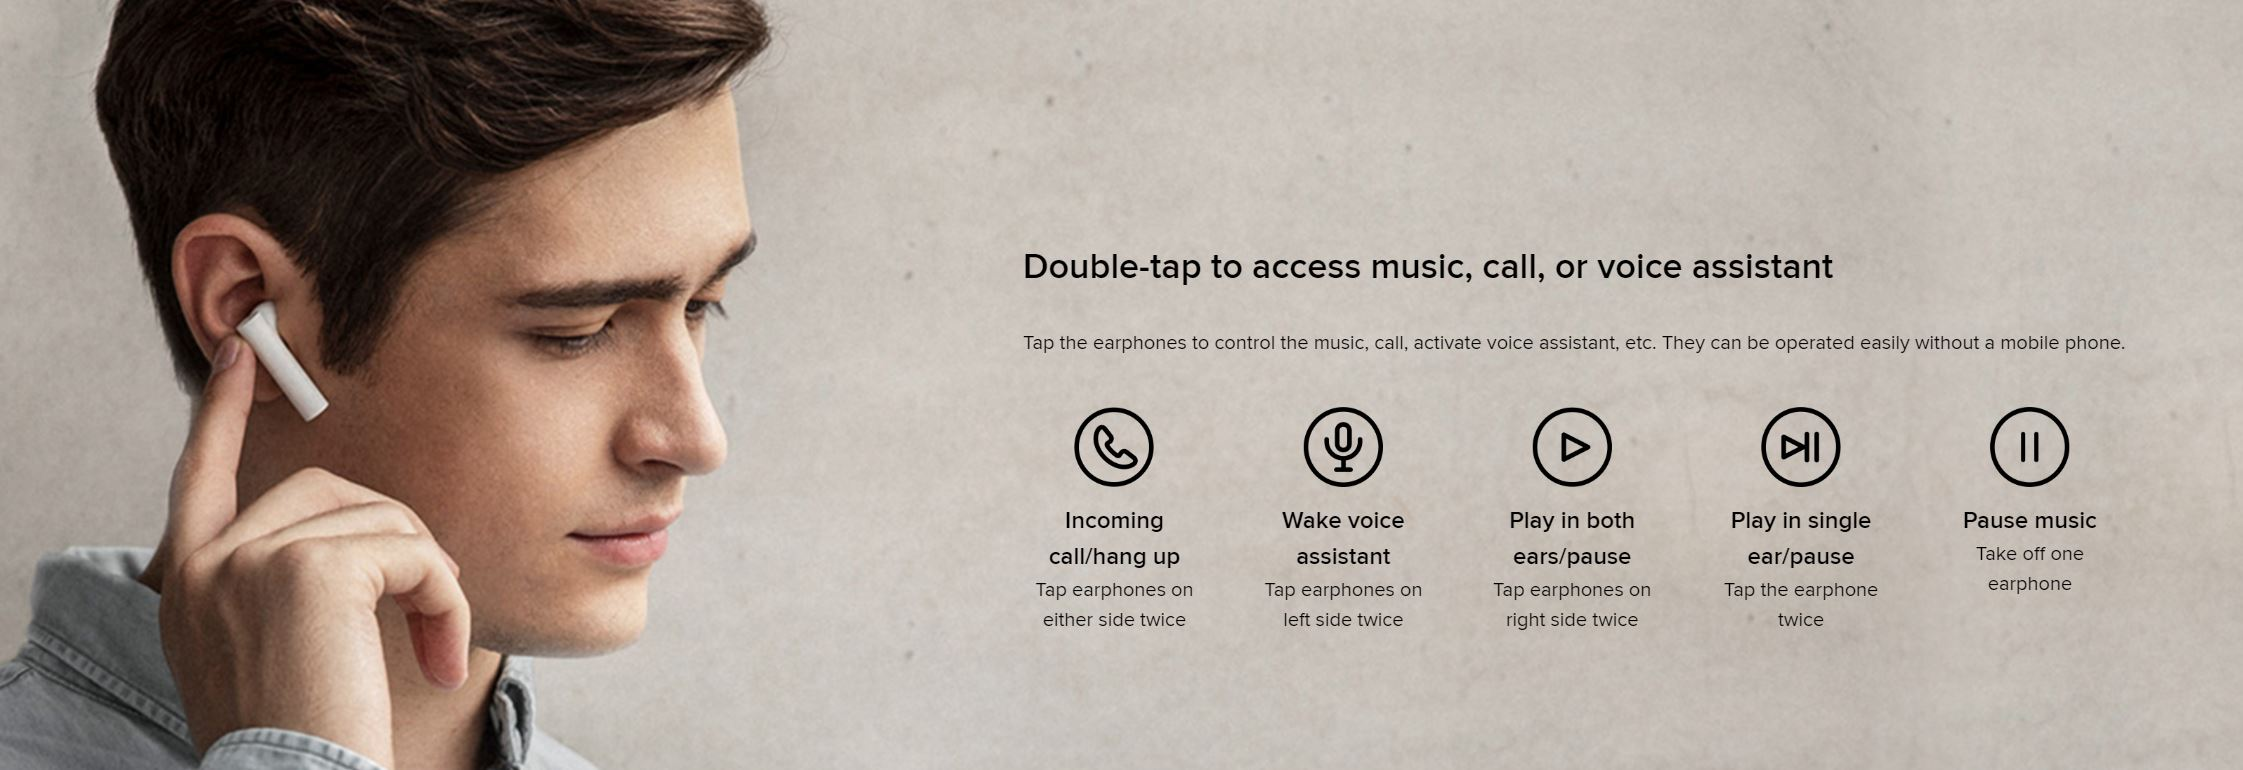 mi-true-wireless-earphones-2-official-price-release-date-availability-philippines-image-1